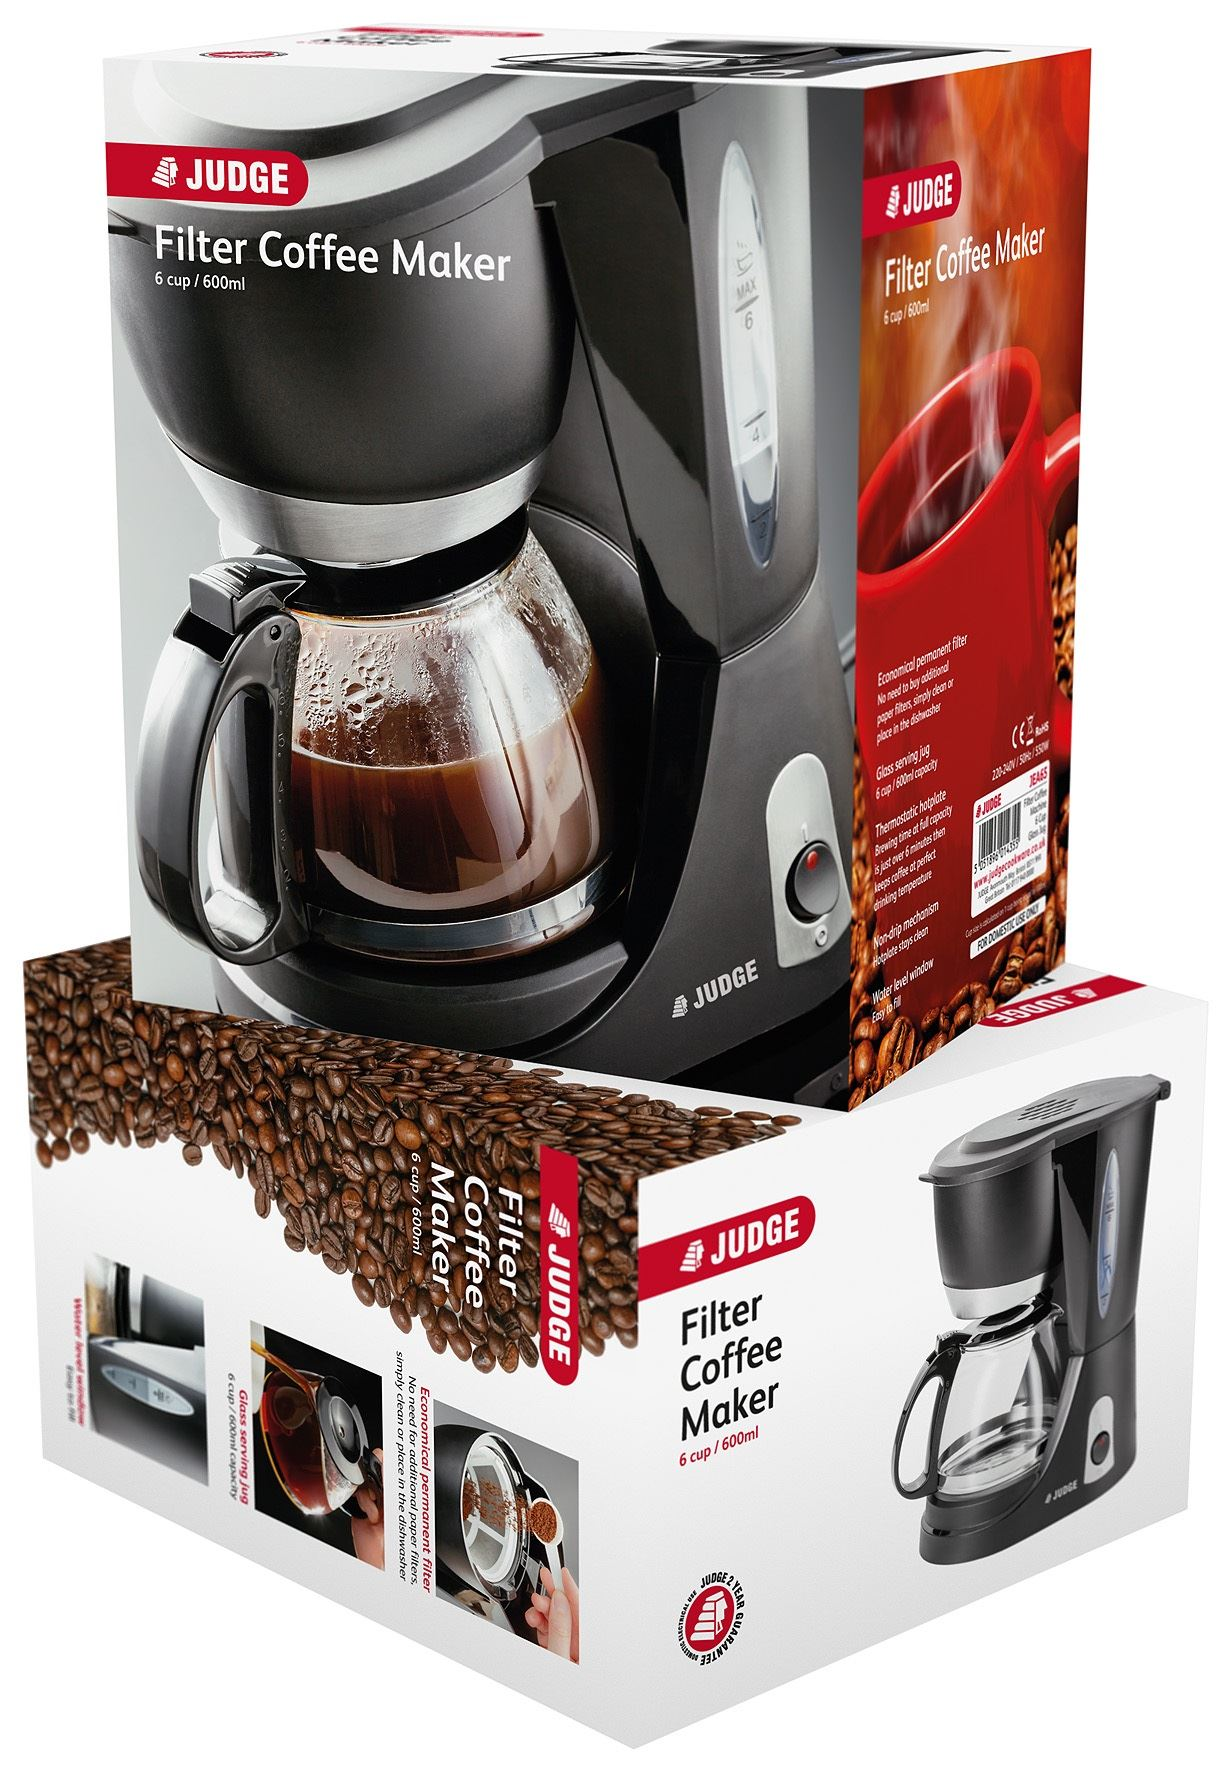 Judge 6cup/600L Electric Filter Coffee Maker with Glass Pot - 700W- JEA65 eBay